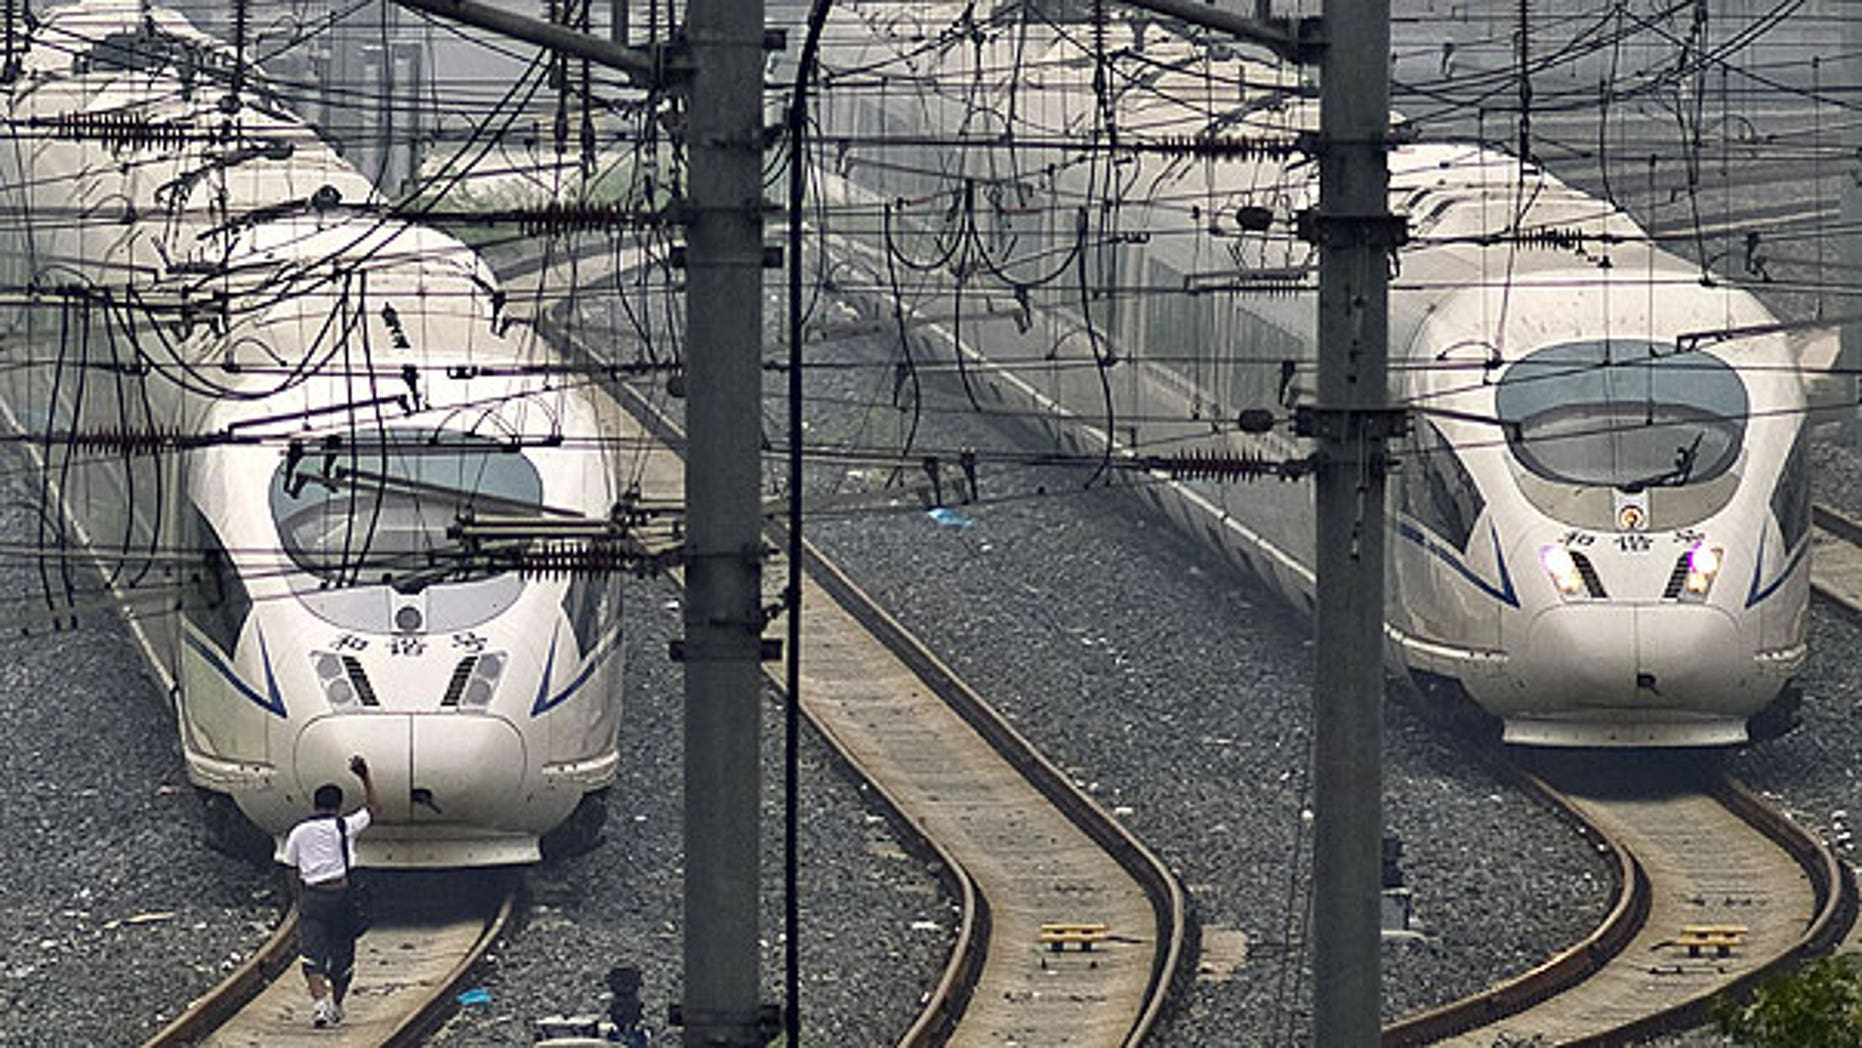 August 12: A train technician waves as he approaches CRH high-speed trains stopped on tracks at Beijing South Station in Beijing.